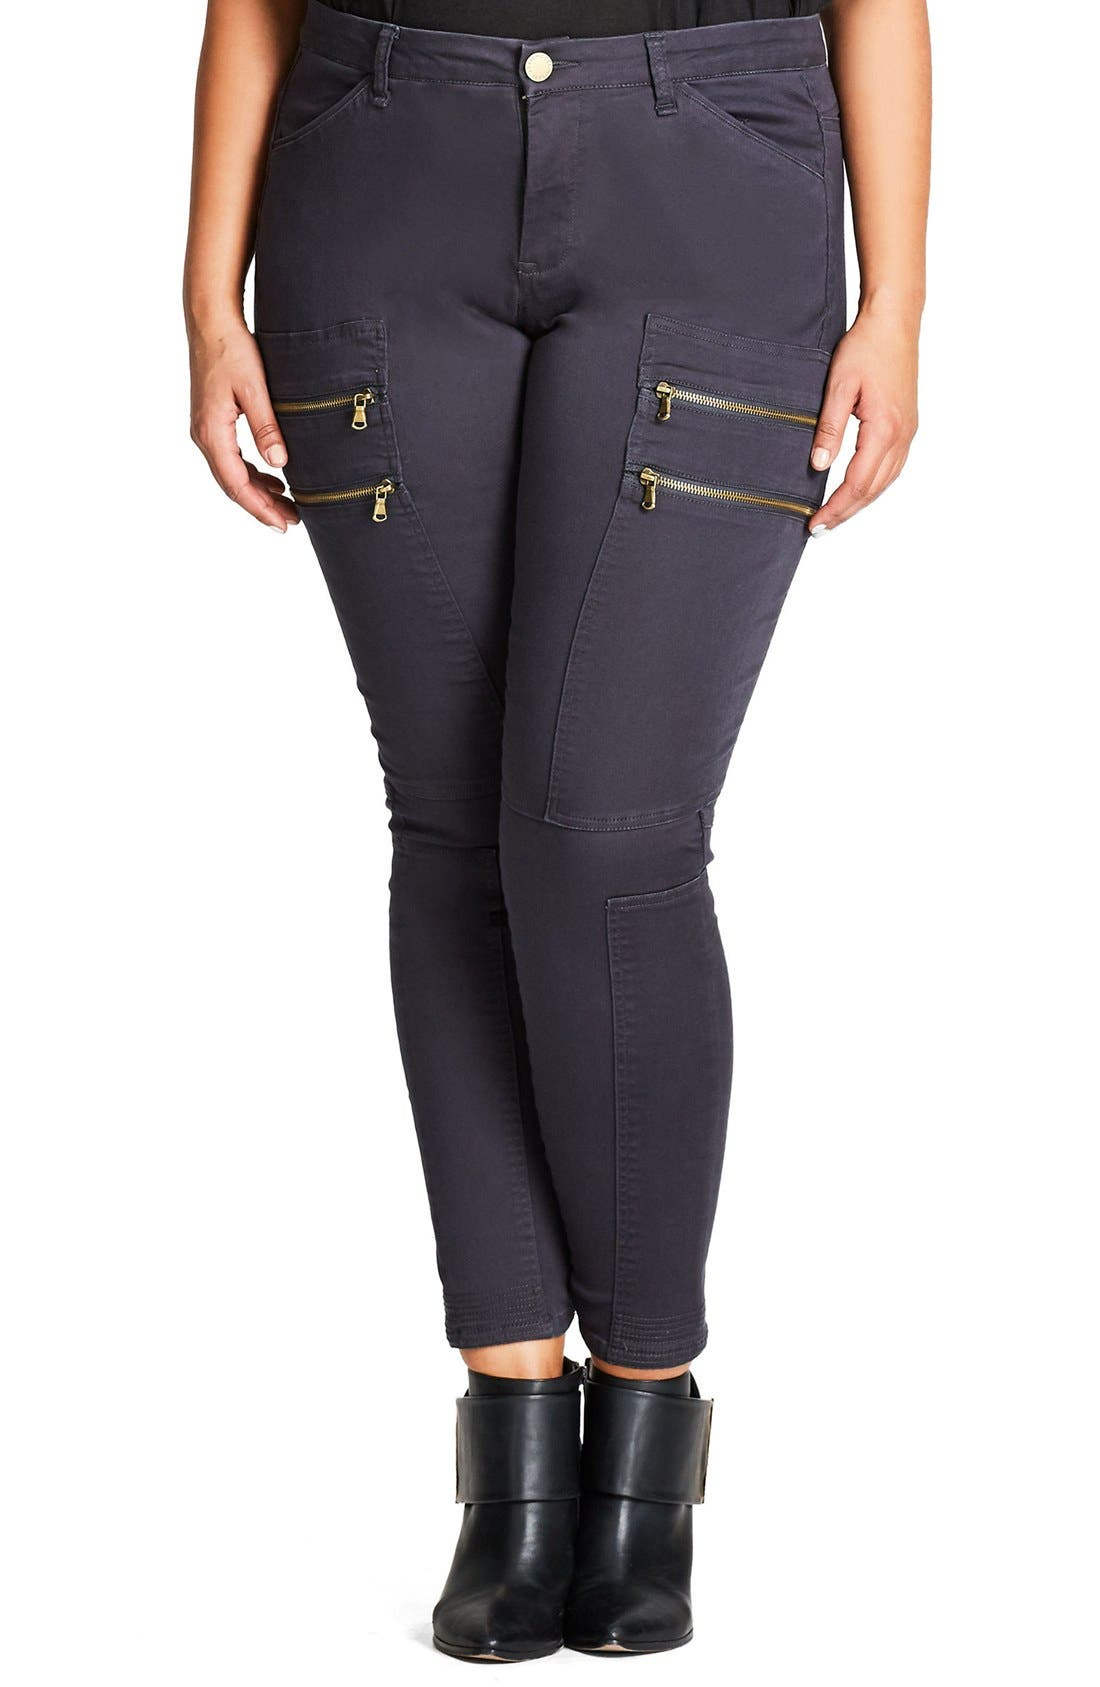 CITY CHIC Commando Zip Skinny Pants